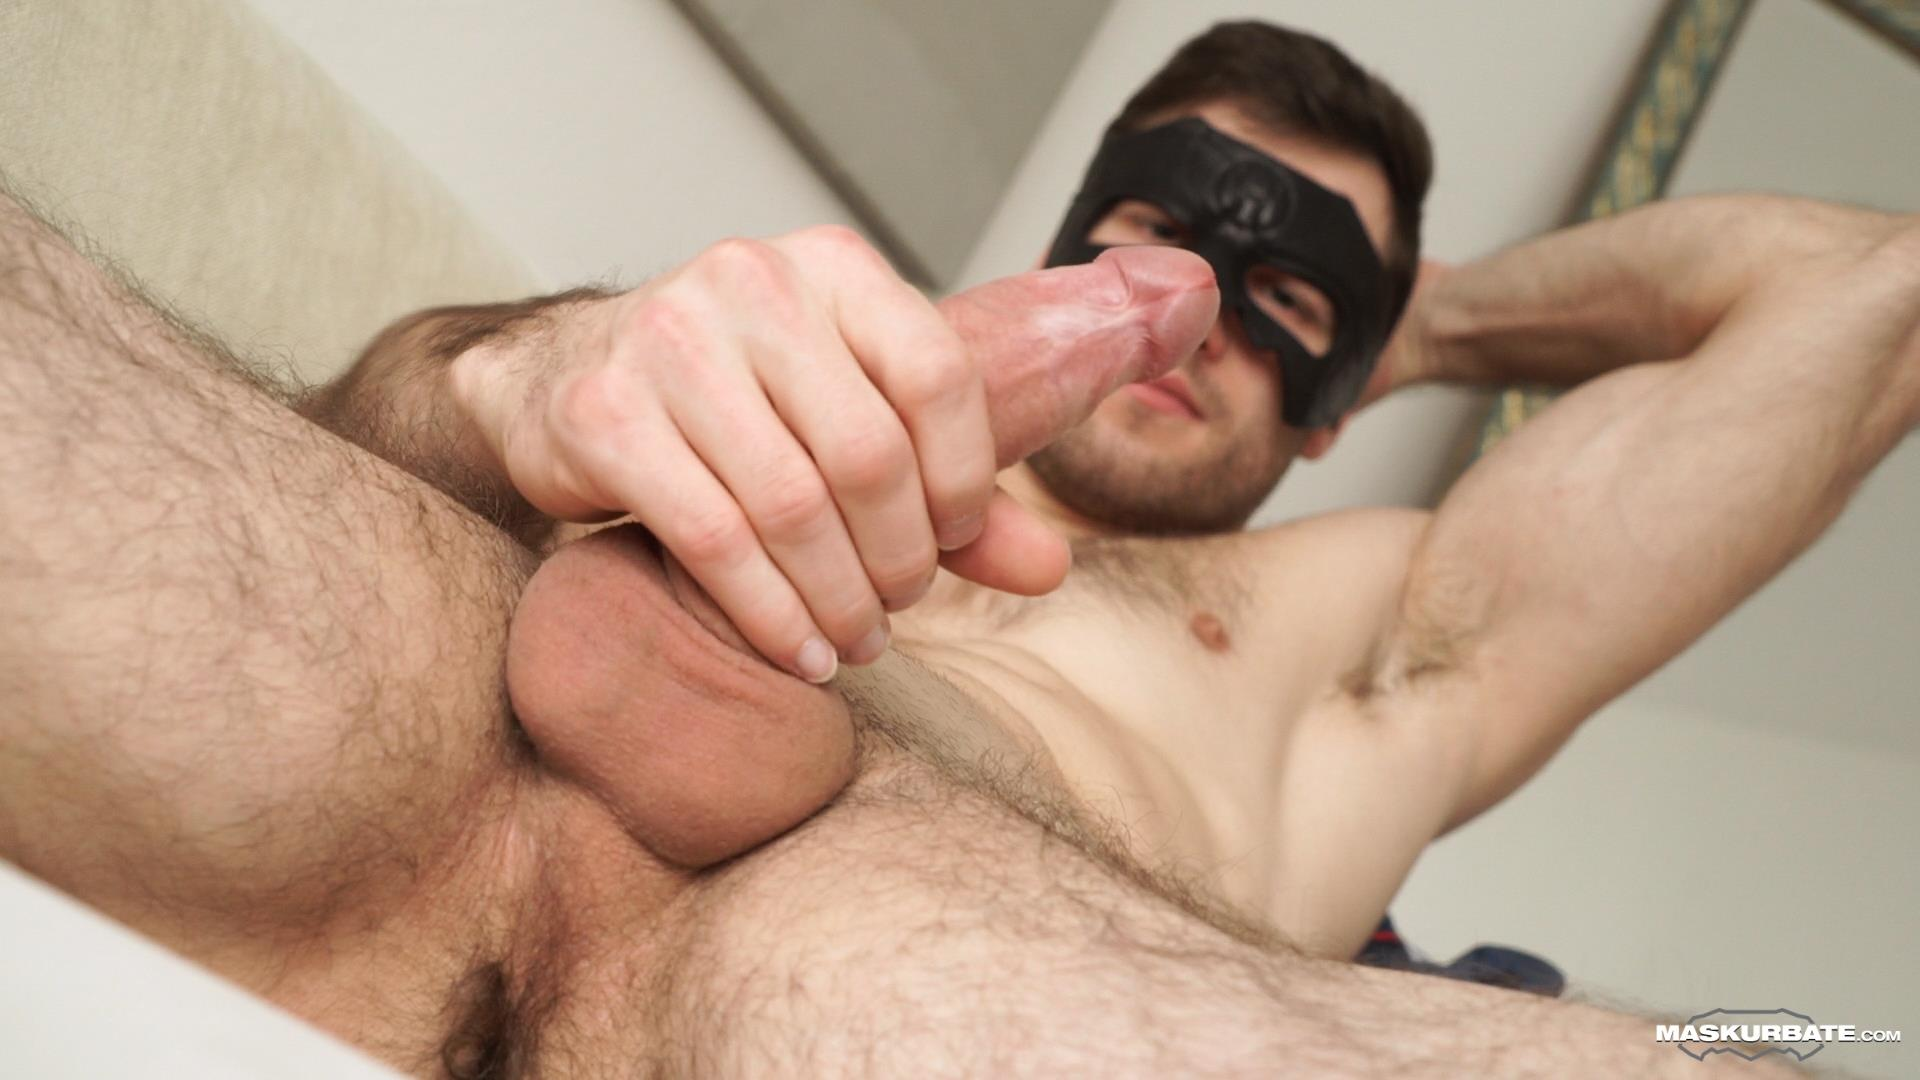 Maskurbate-Sam-Cuthan-Straight-Naked-Hairy-Muscle-Guy-Jerk-off-08 Straight Masked Hairy Muscle Hunk Strokes His Big Uncut Cock